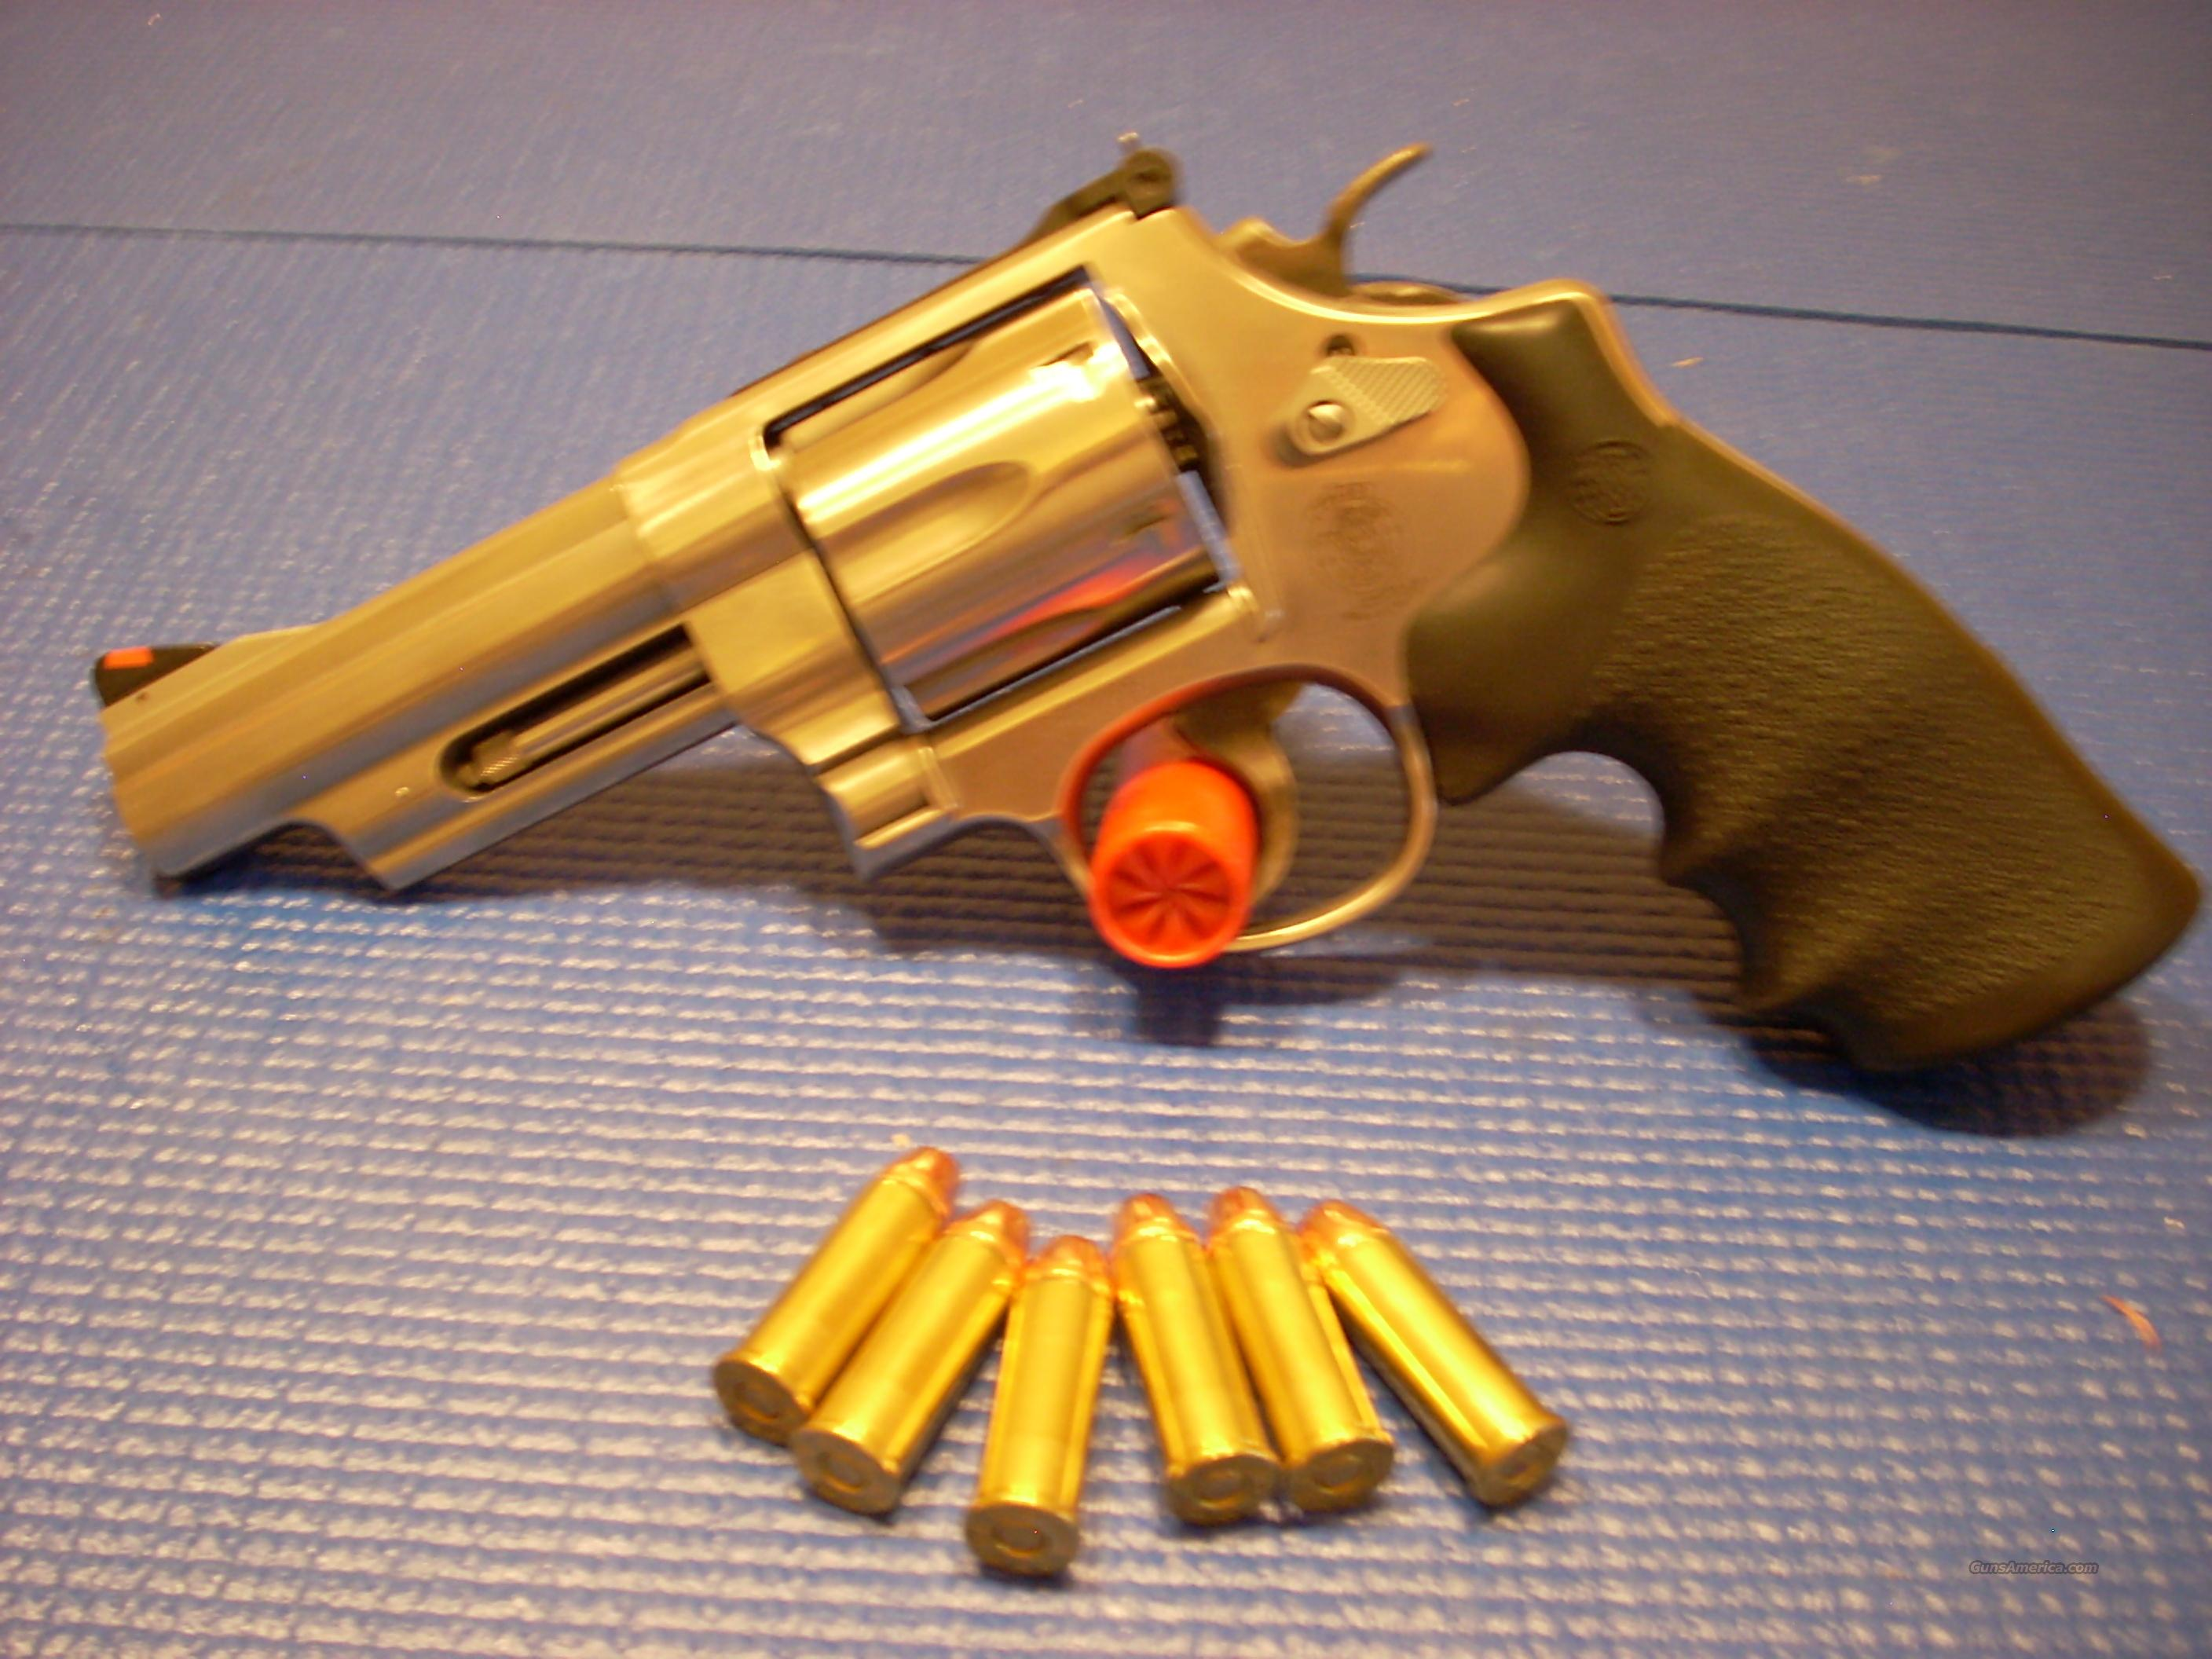 629 44 MAG  Guns > Pistols > Smith & Wesson Revolvers > Model 629